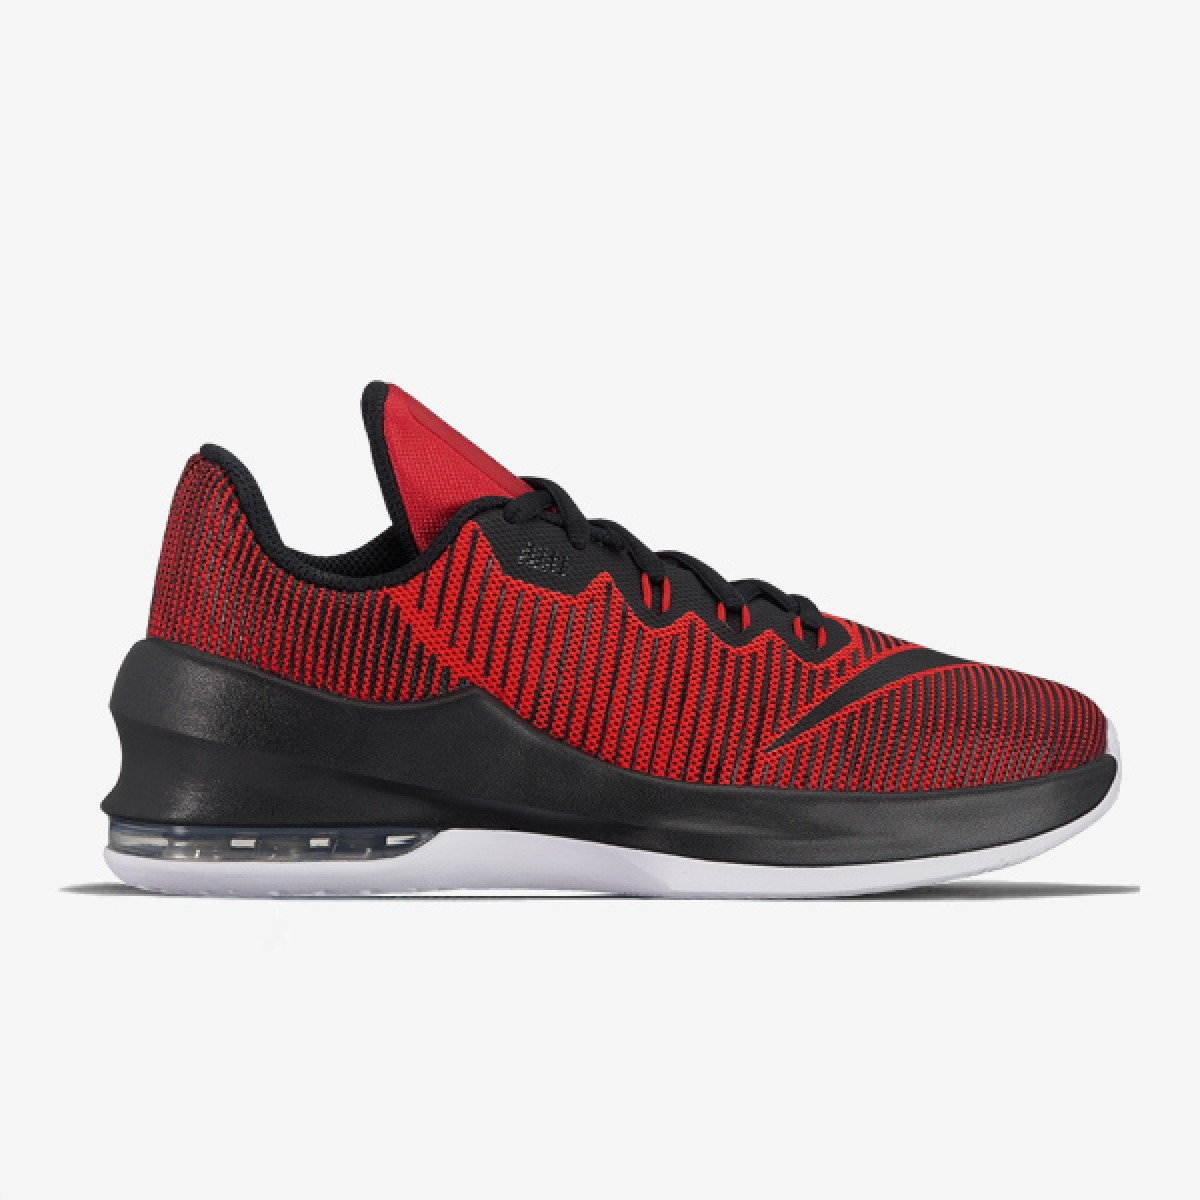 differently 36893 4ec39 Buy Nike Air Max Infuriate II 'Red' Basketball shoes & sneakers